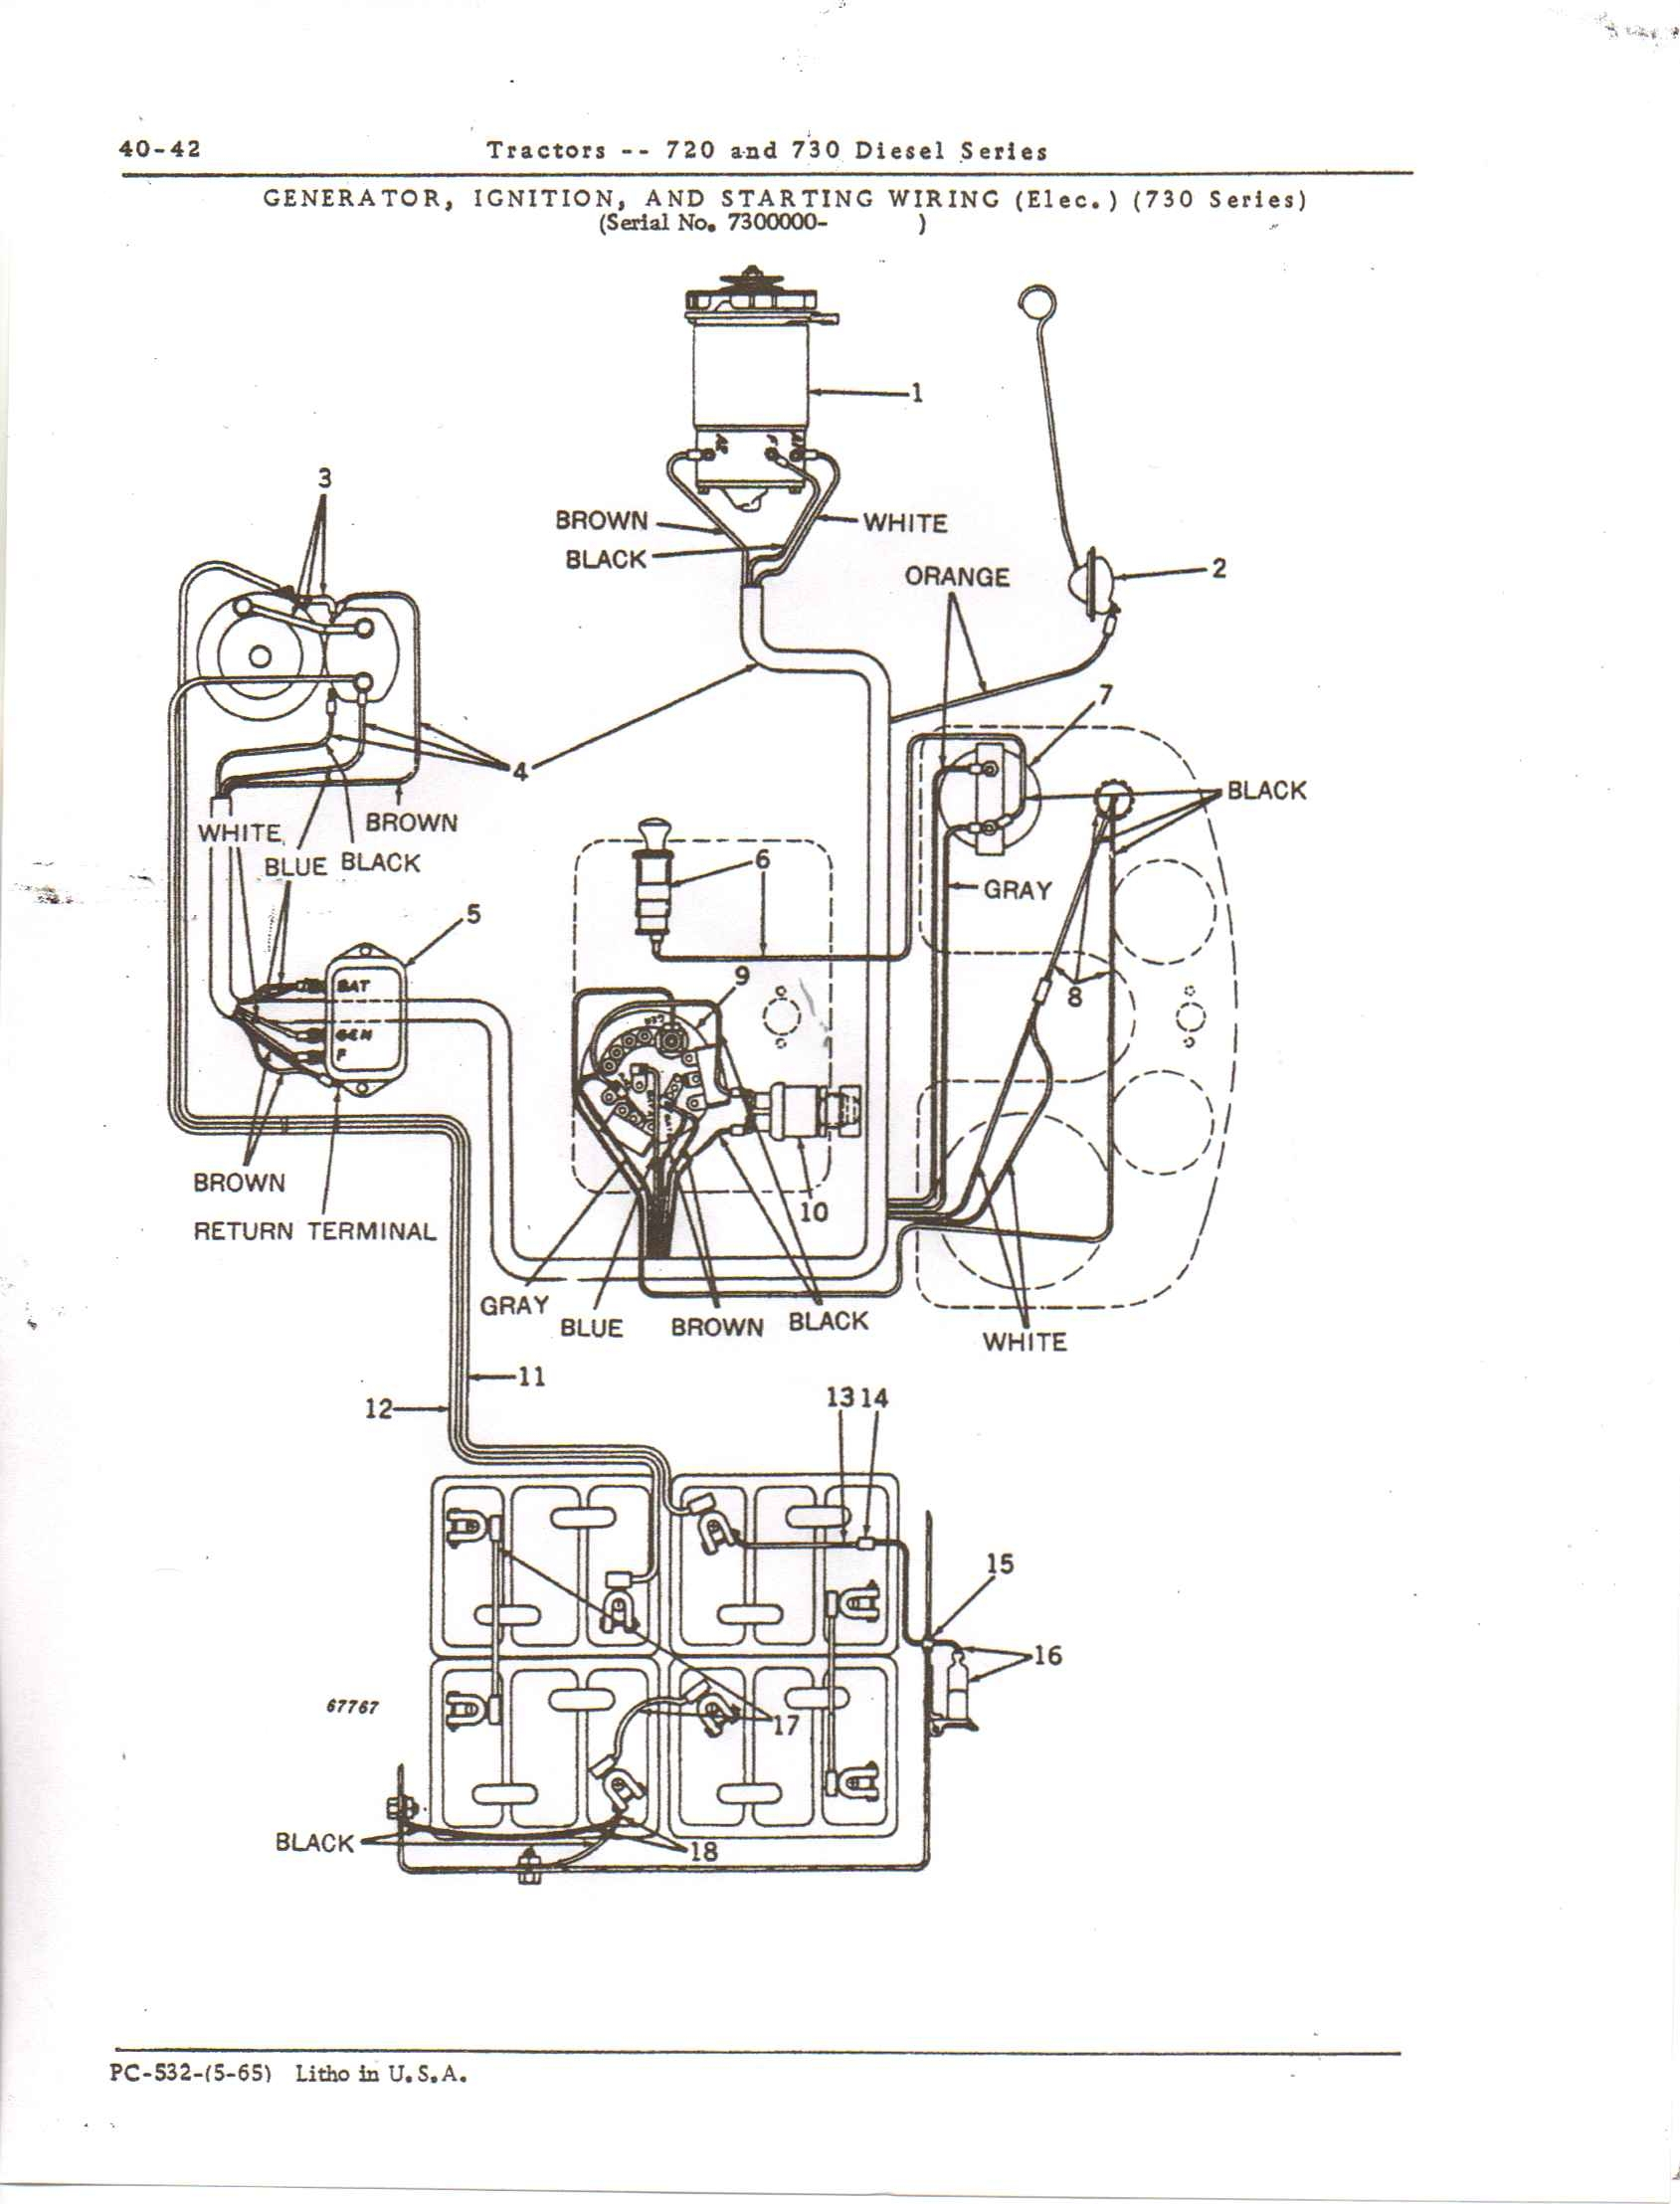 John Deere B Wiring Diagram | Wiring Diagram on